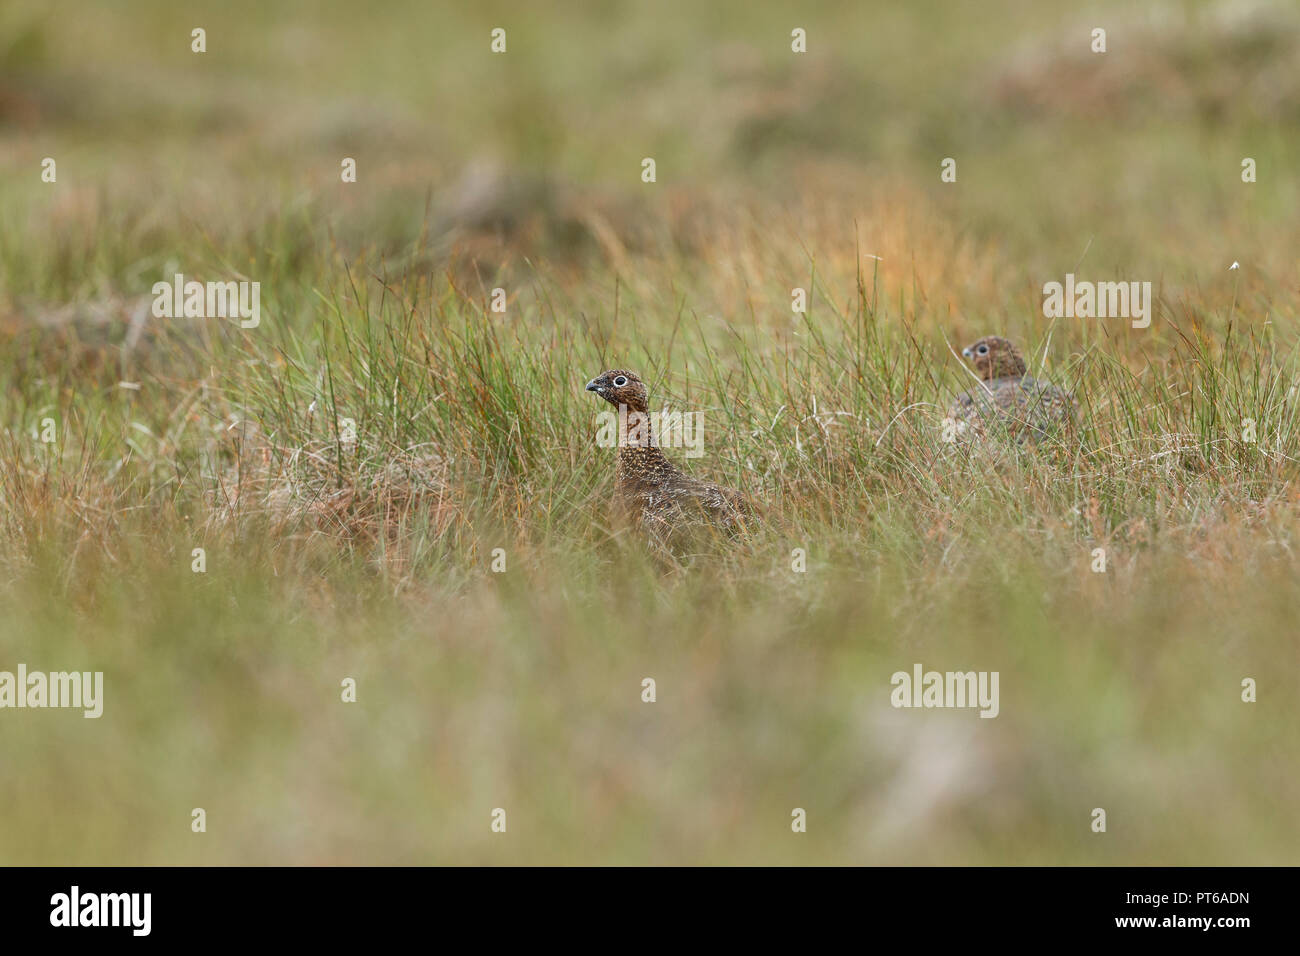 Red grouse Lagopus lagopus scotica, two females, on alert on moorland, Glen Kyllachy, Highlands, Scotland, September - Stock Image